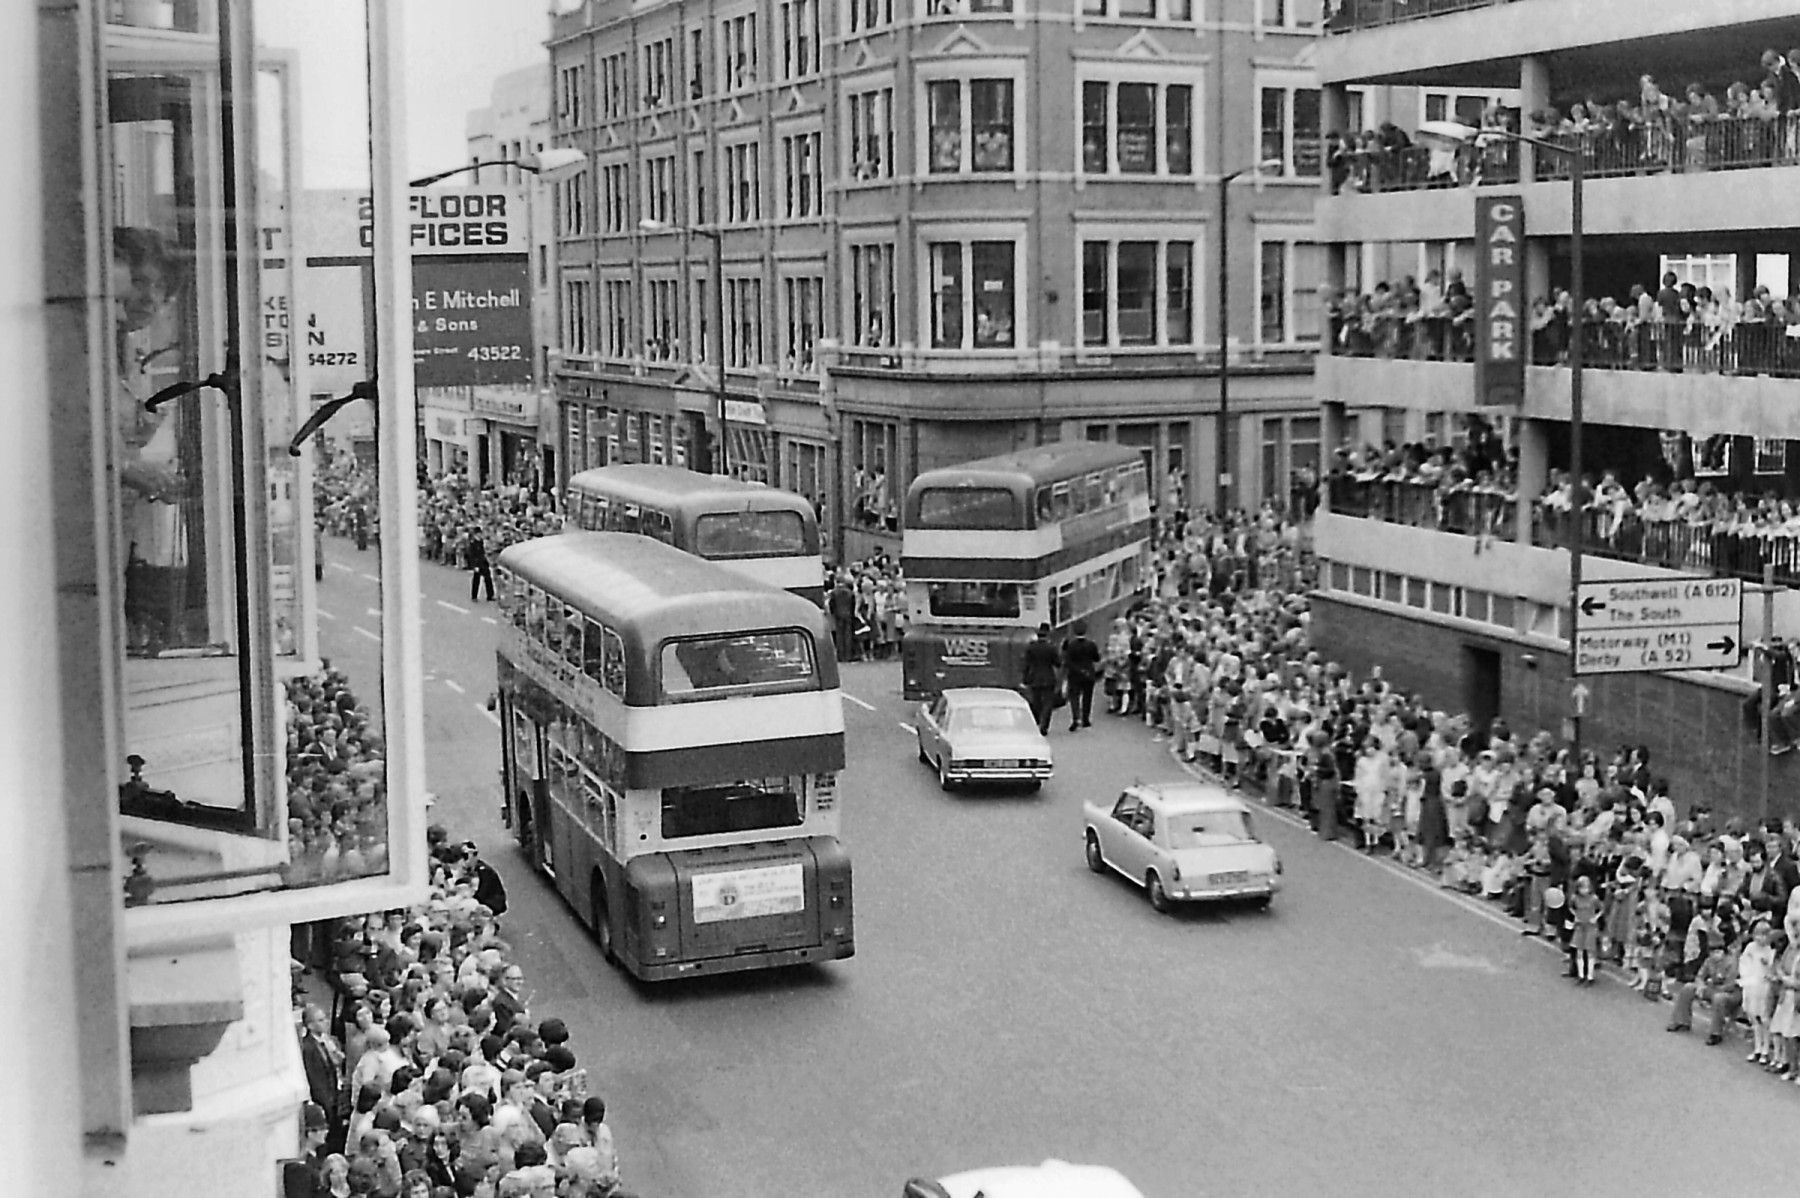 Queen's Silver Jubilee visit to Nottingham, 28 July 1977